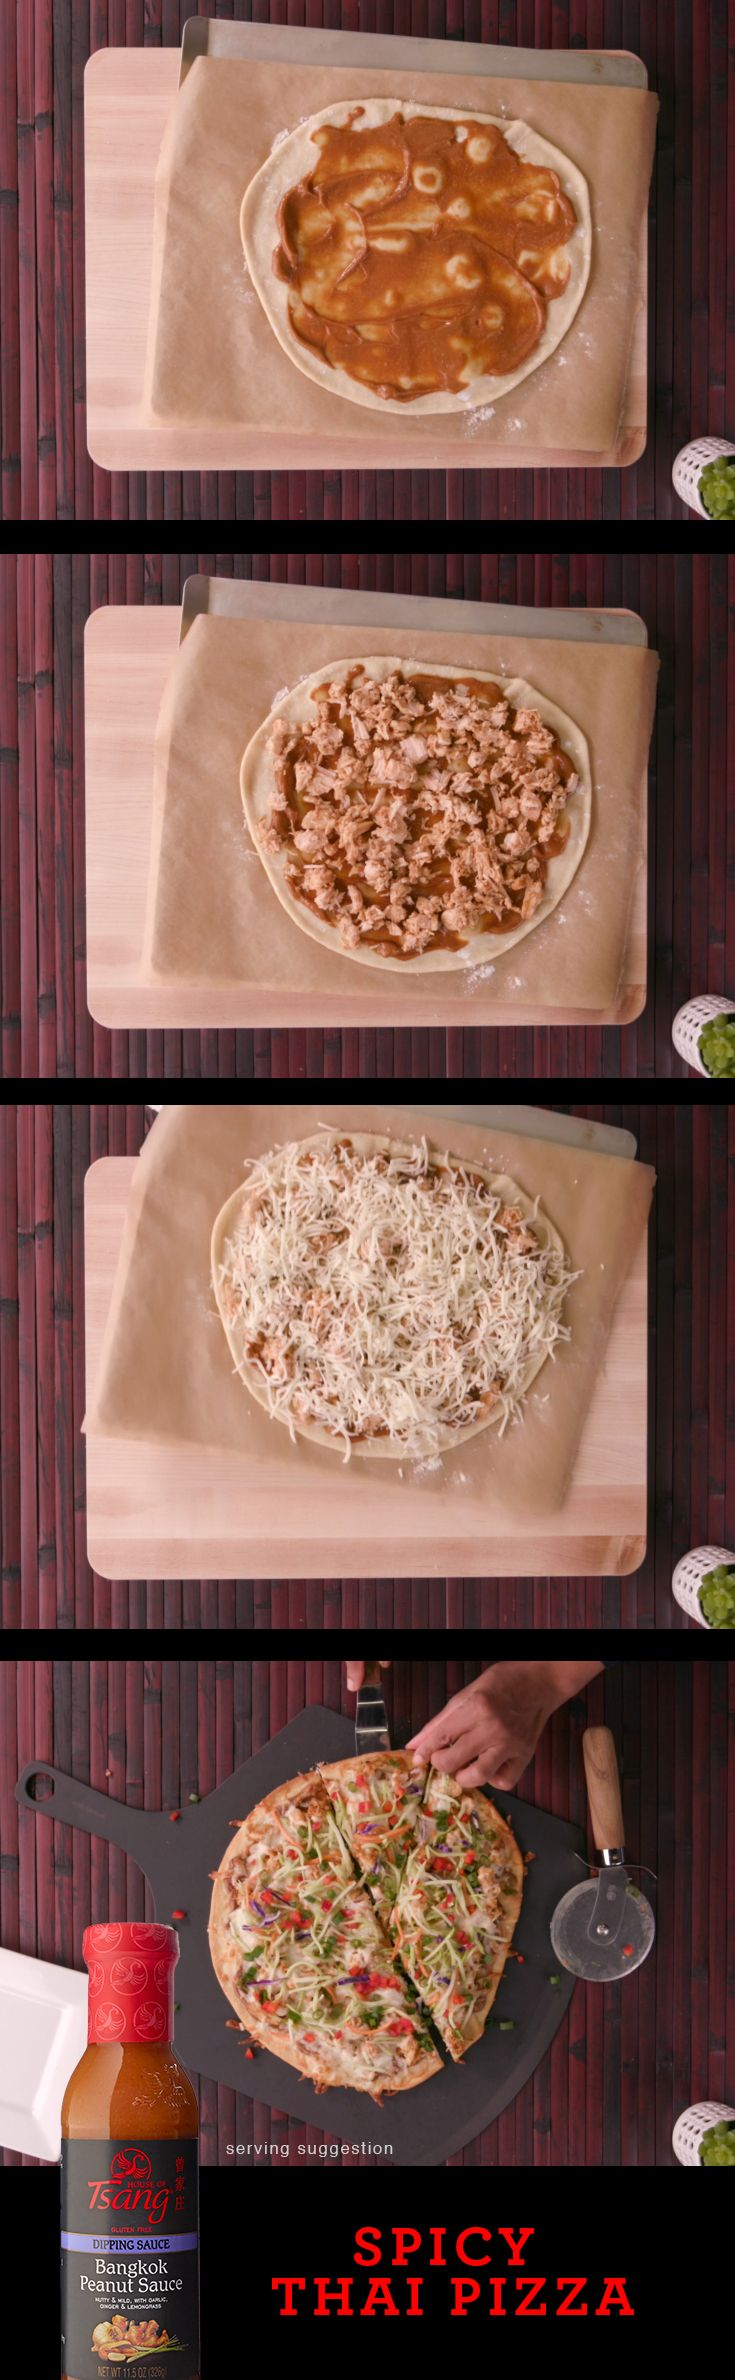 This Spicy Thai Pizza made with HOUSE OF TSANG® Bangkok Peanut Sauce is perfect for sharing! | Thai Flavor | Easy Meal | Asian Cooking